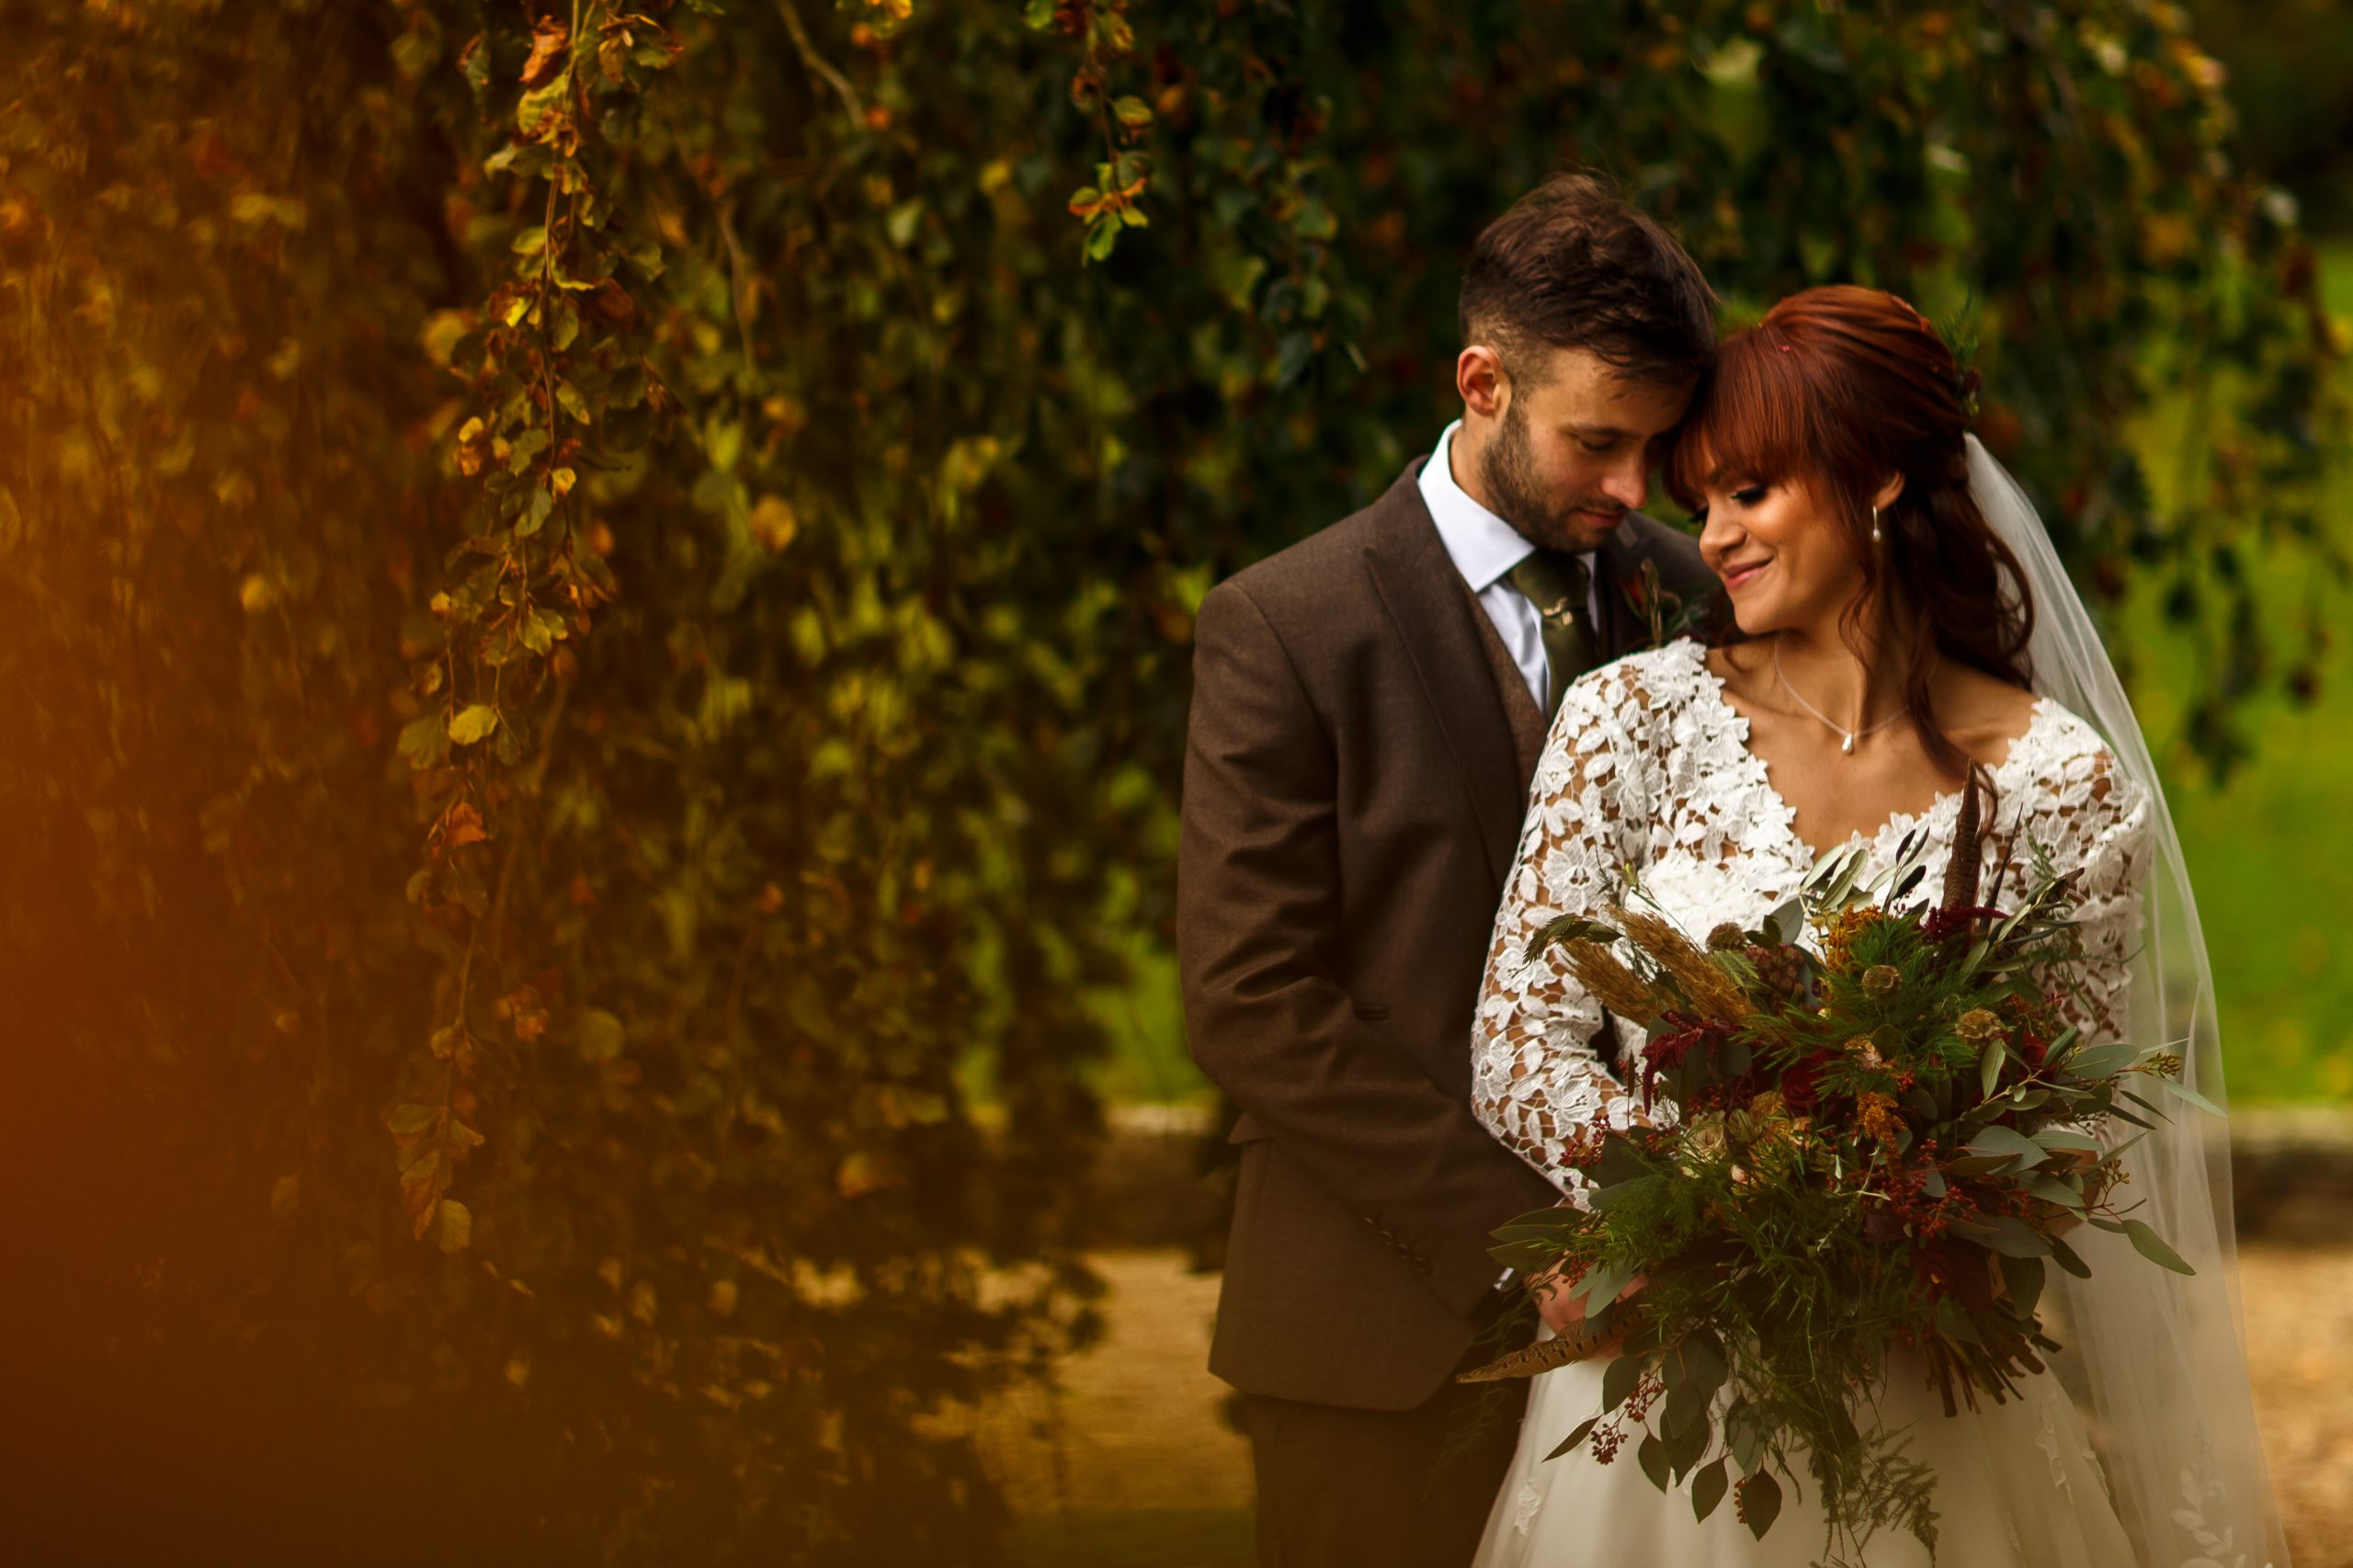 Red haired bride wearing long sleeves snuggled up to her groom